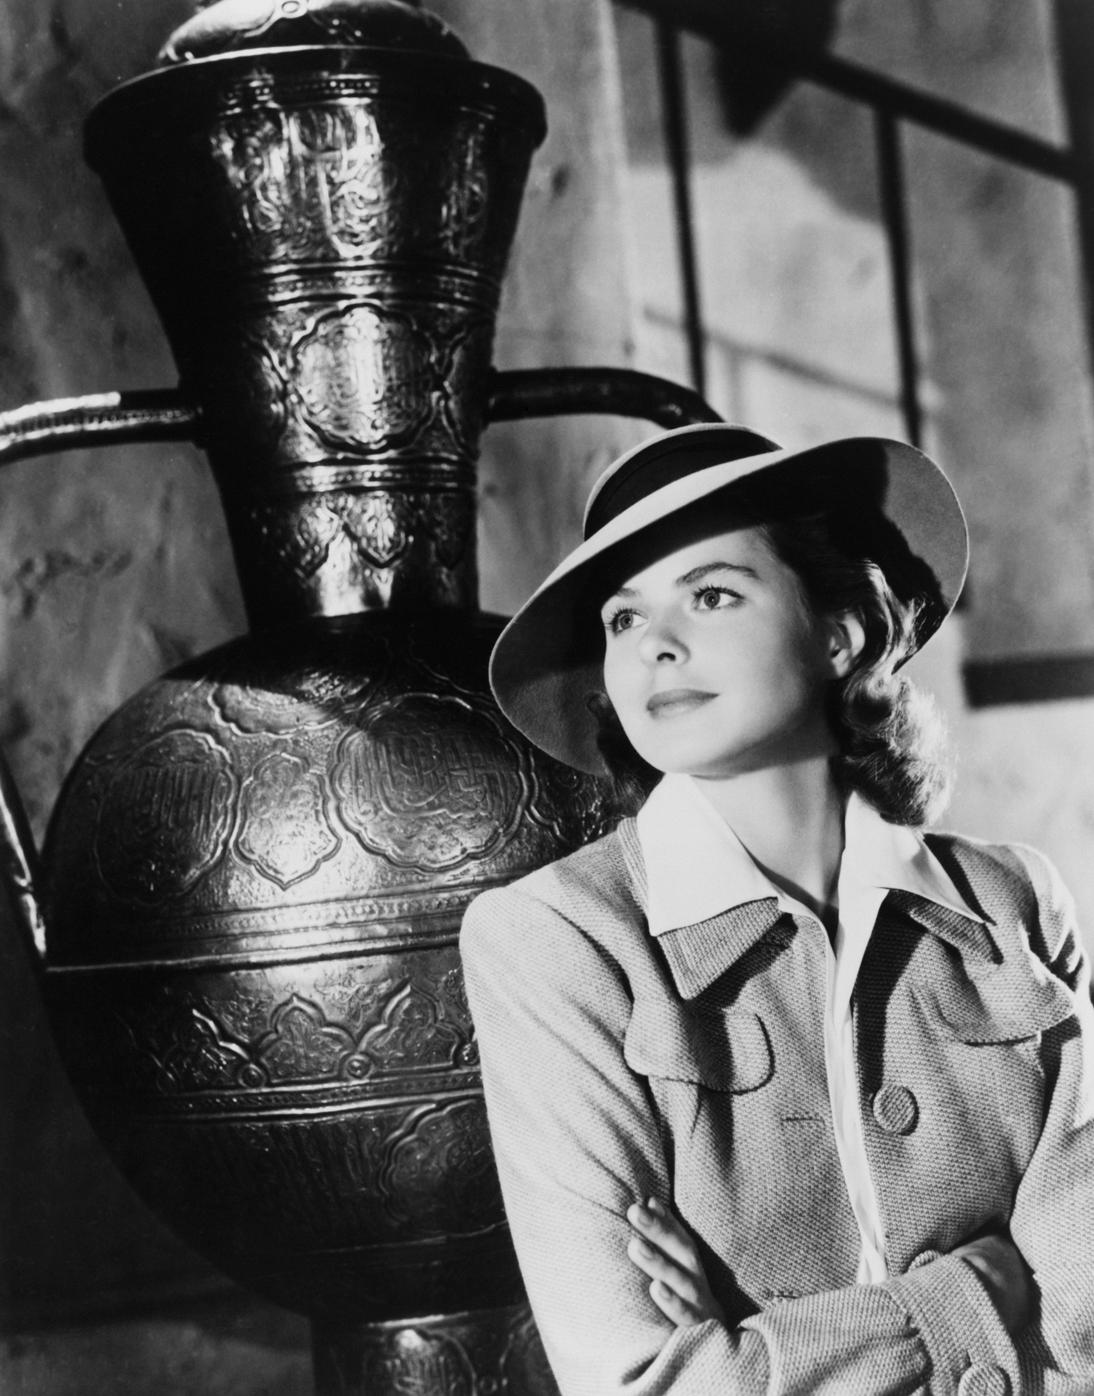 The use of sound in casablanca a film by michael curtiz